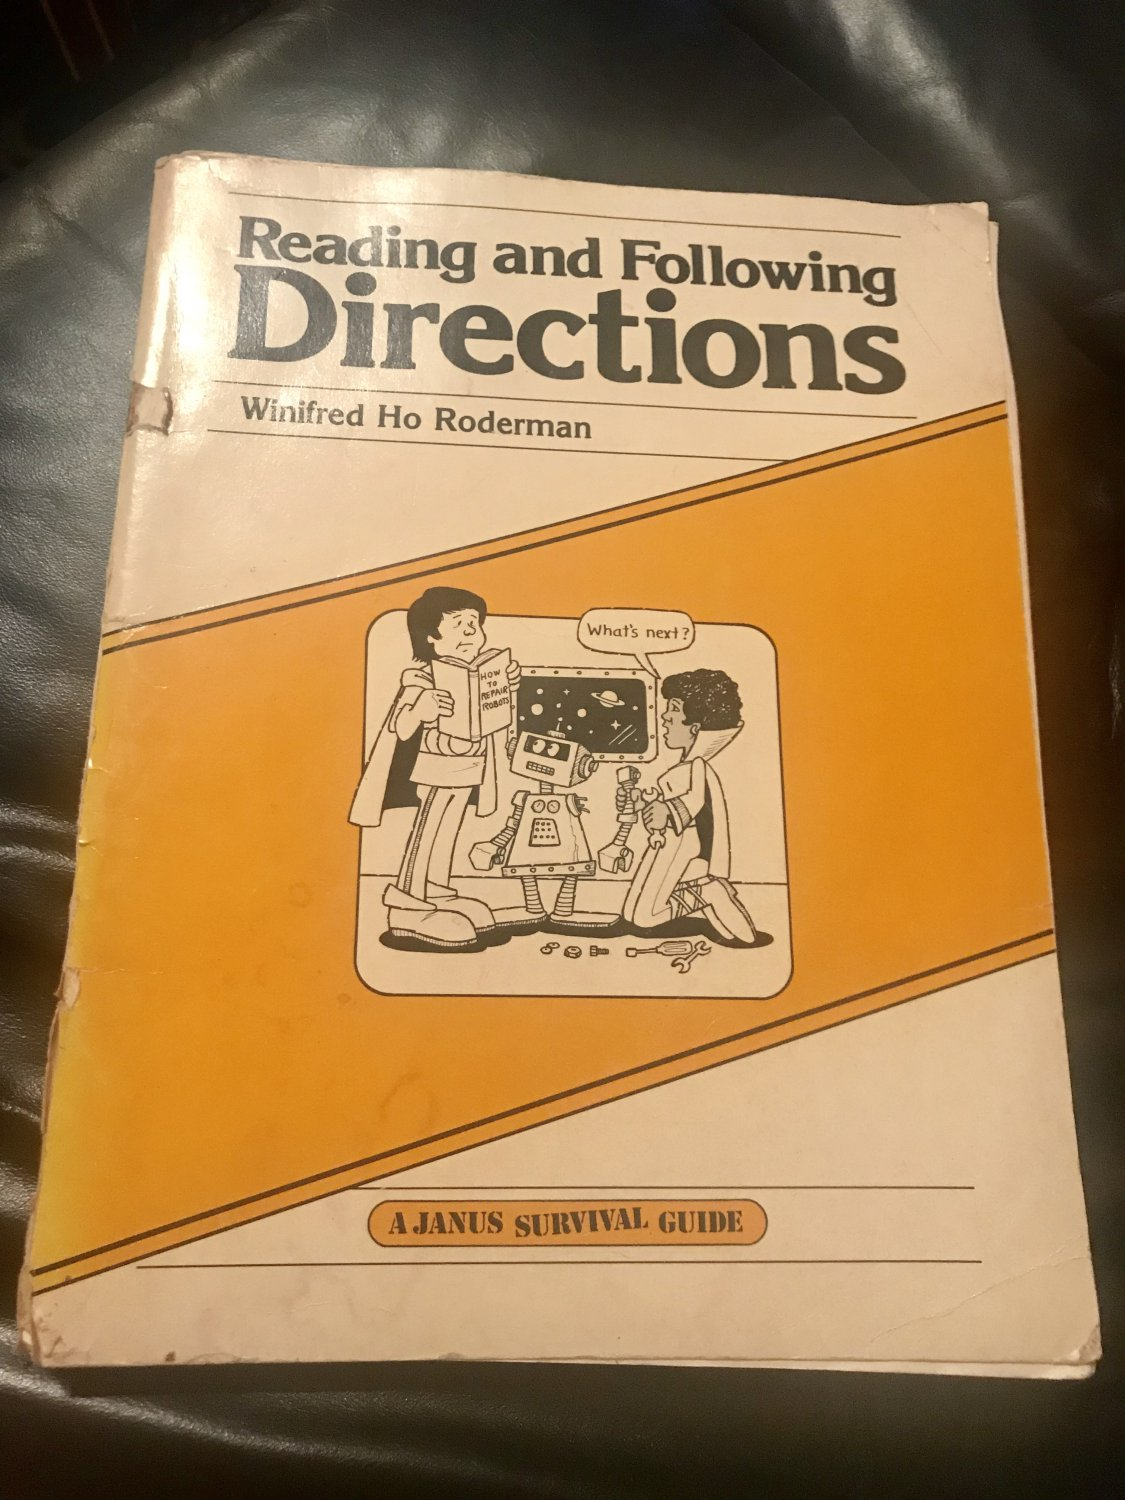 Reading and Following Directions by Einifred H. Roderman (Author)